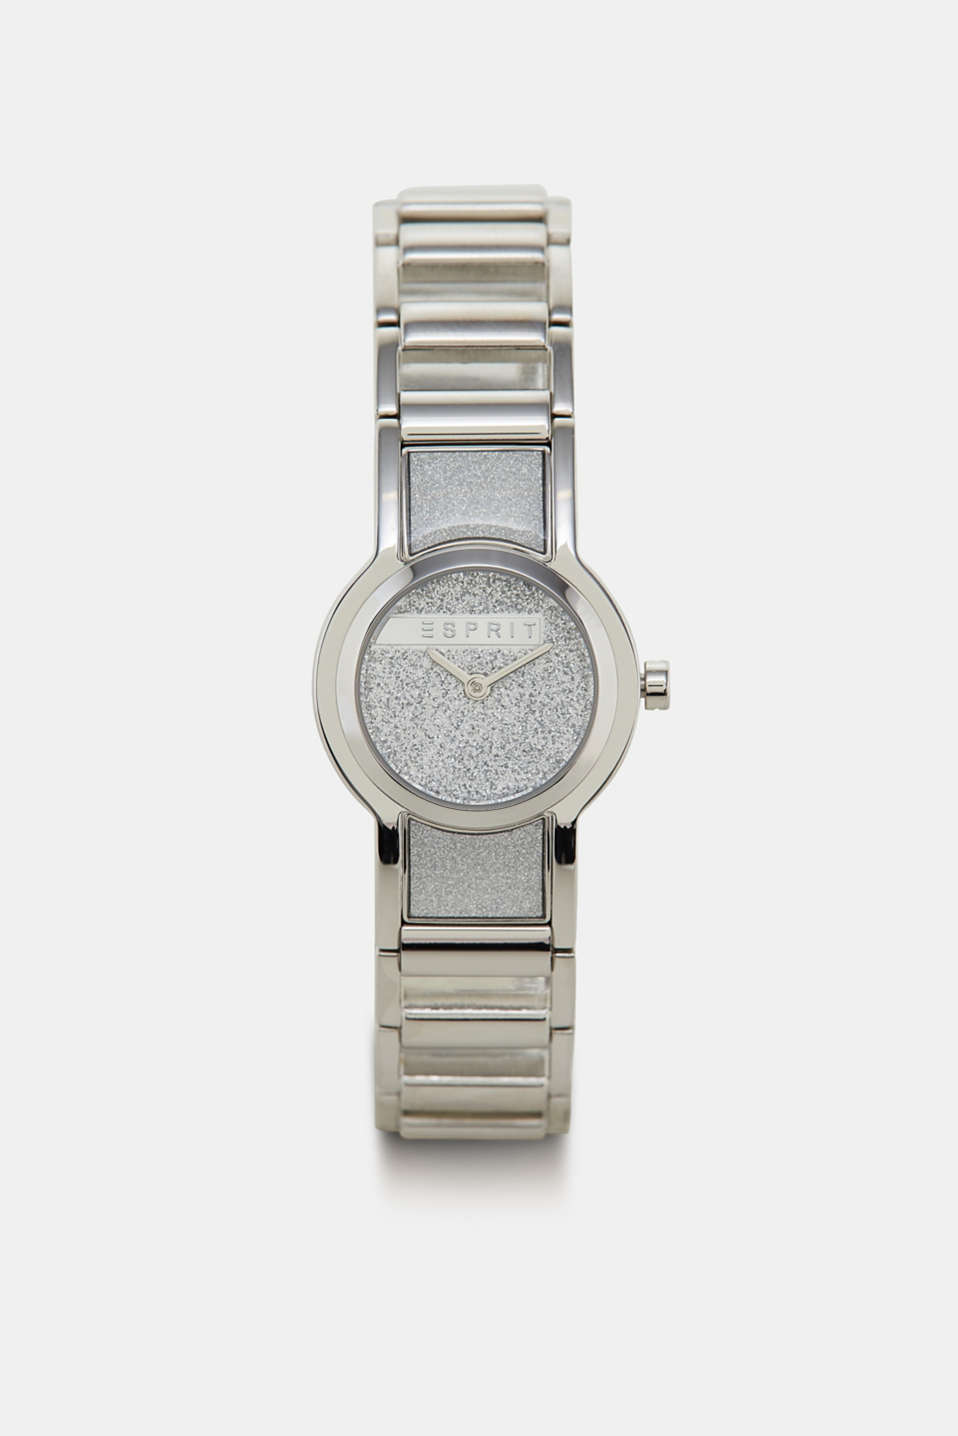 Esprit - Stainless steel watch with glitter details